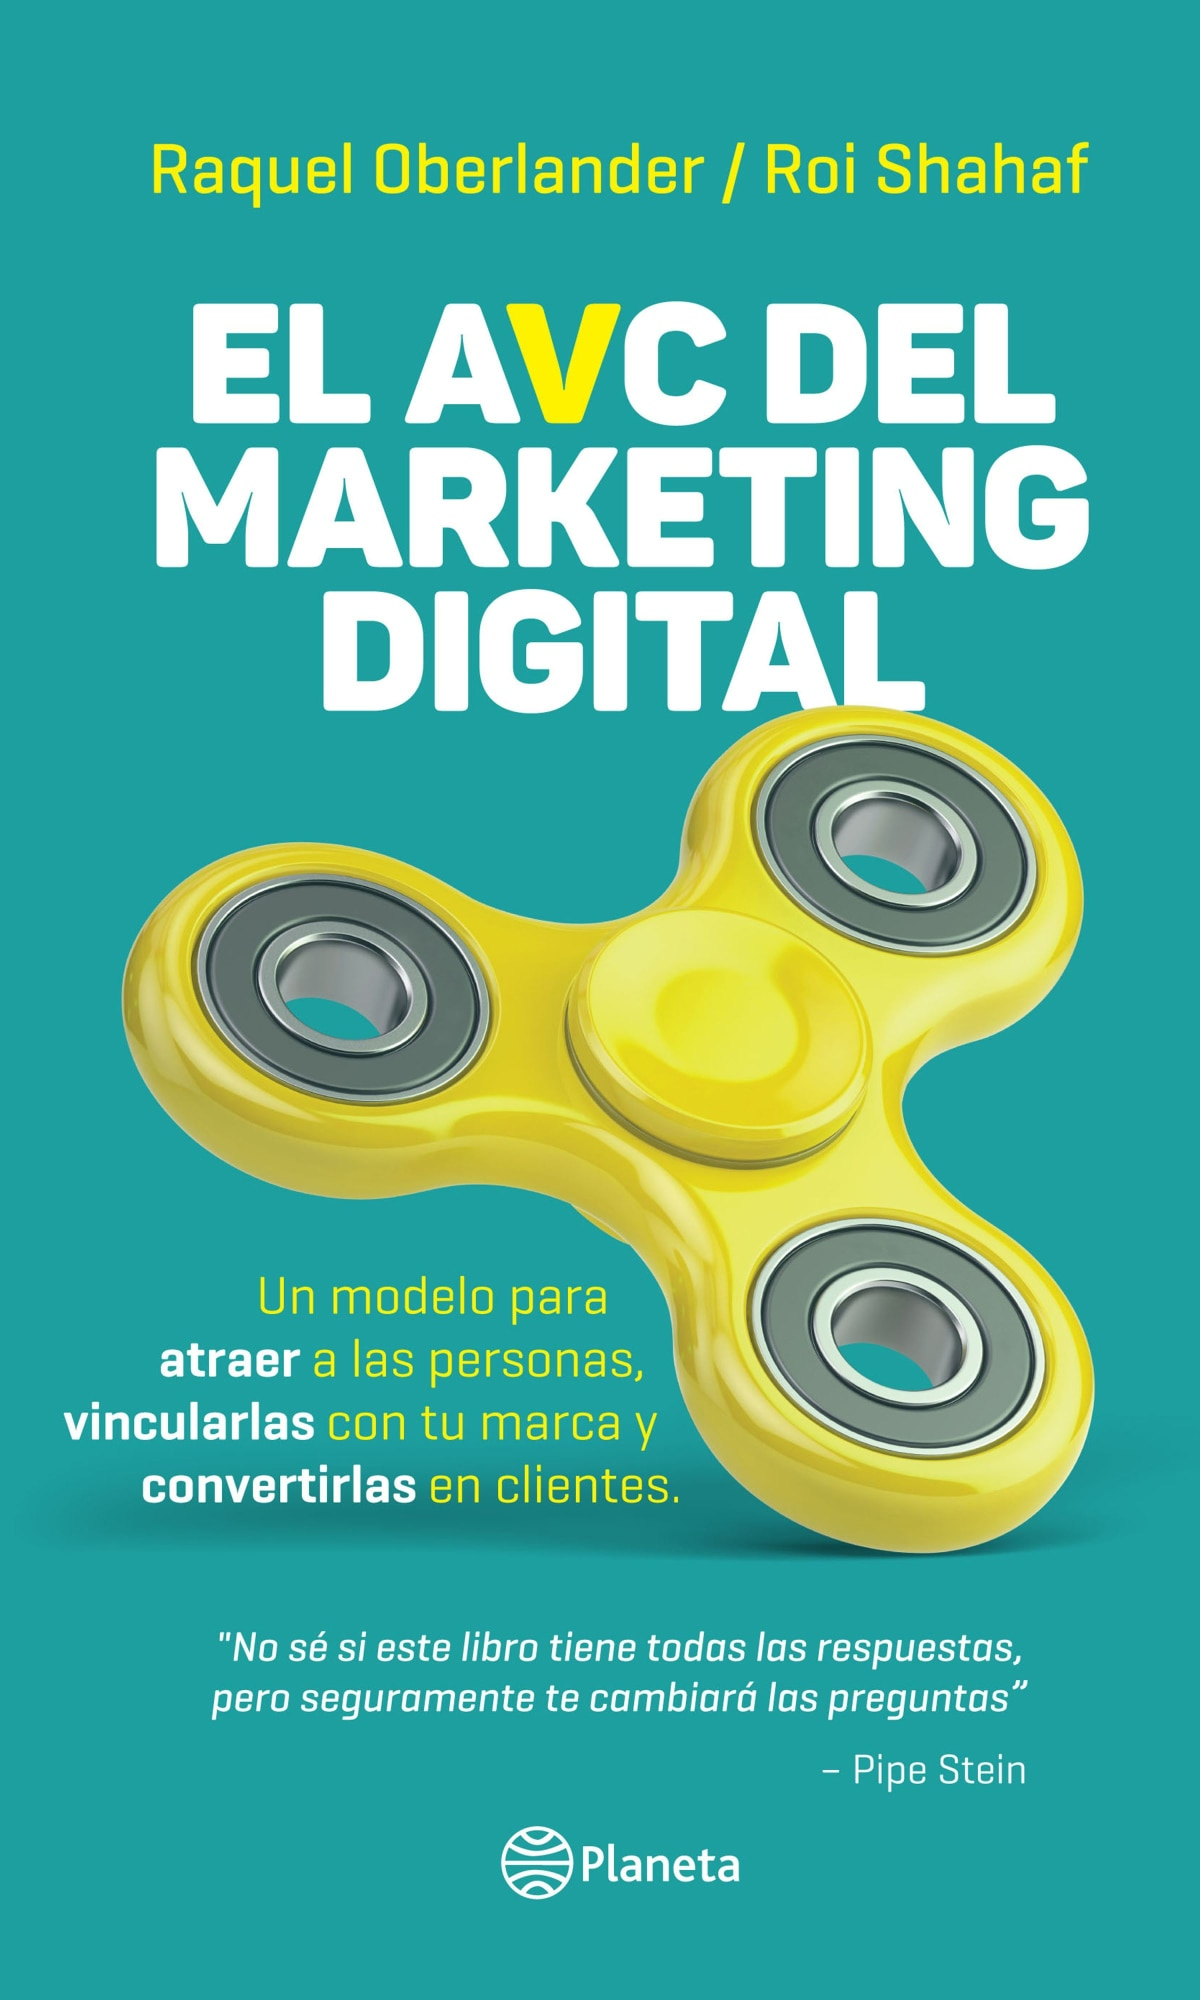 El avc del marketing digital